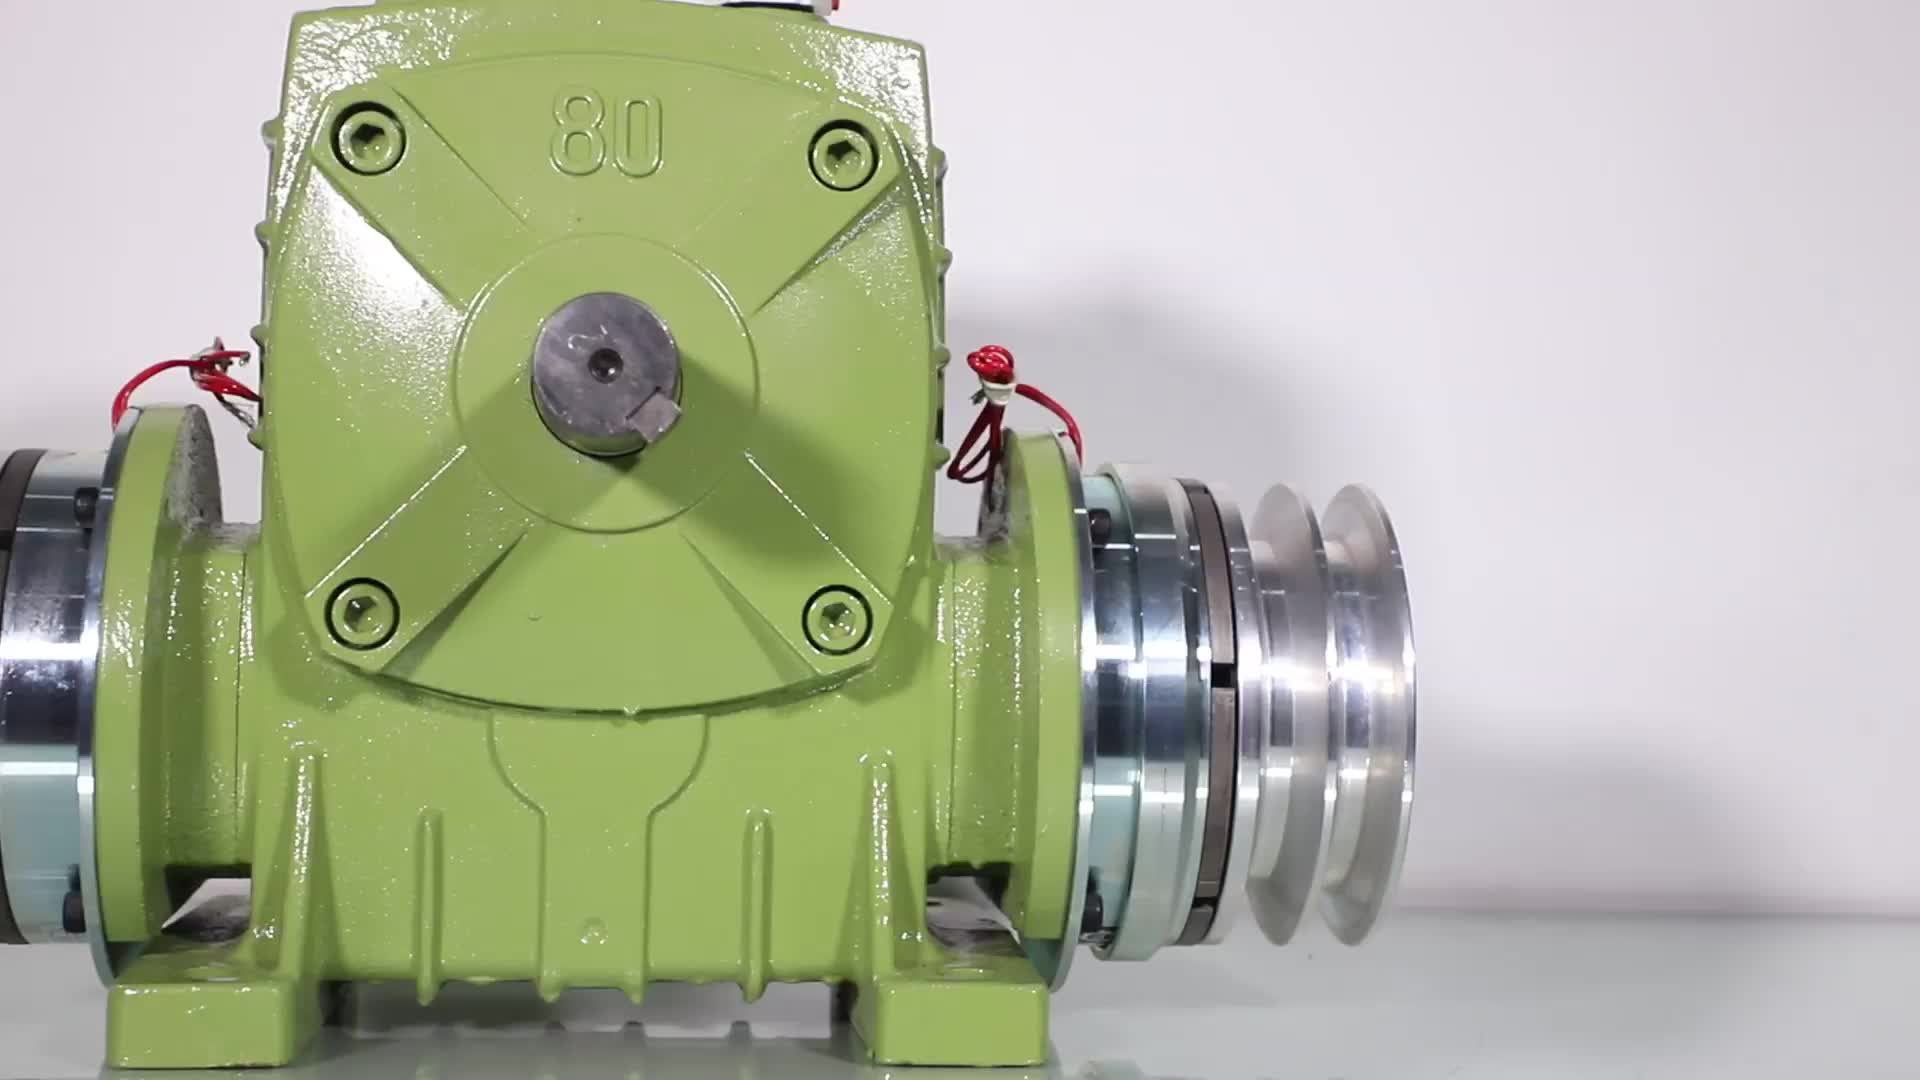 TJ-BKACS 1:10~1:60 ratio worm speed gearbox reducer with electromagnetic clutch and brake